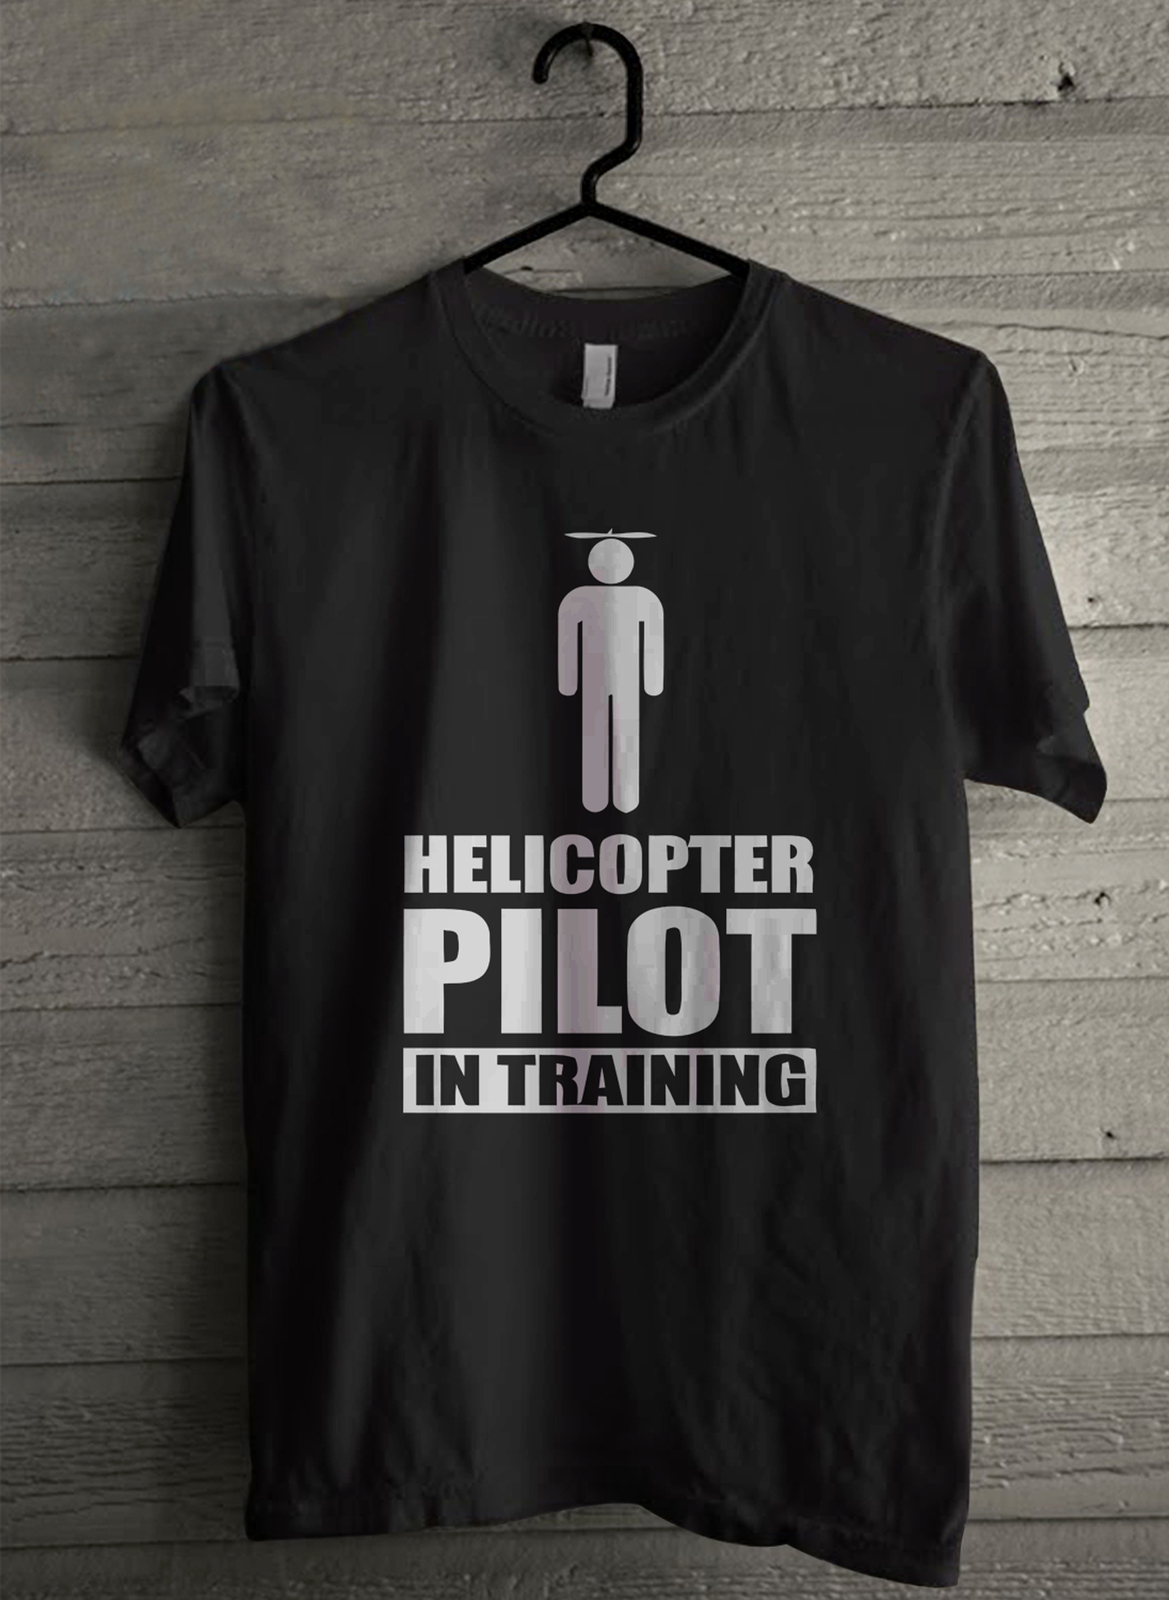 Helicopter pilot in training